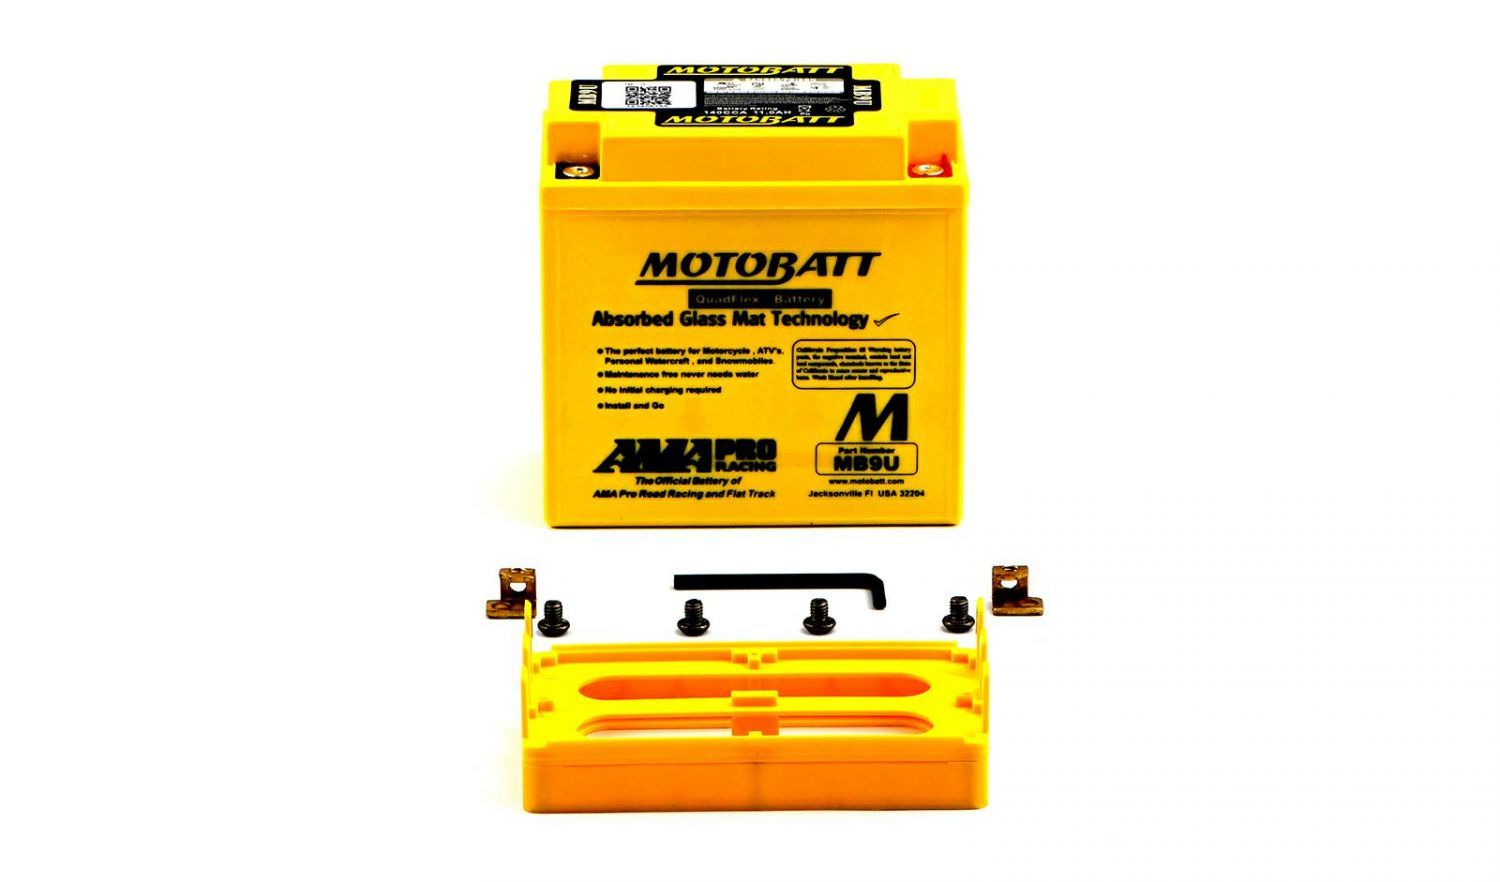 Motobatt Batteries - 501090MY image